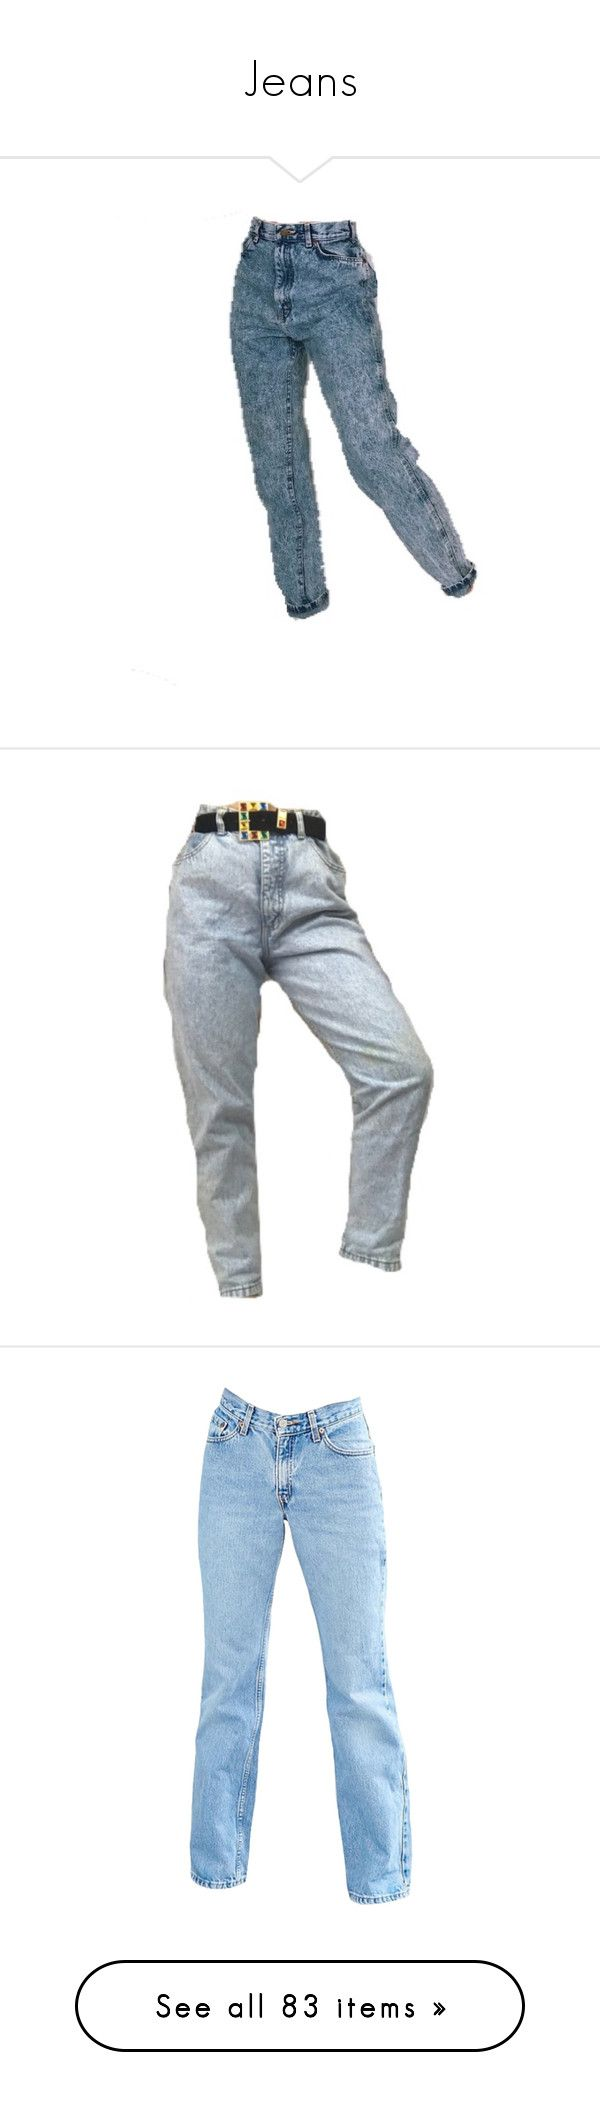 """""""Jeans"""" by cmmpany ❤ liked on Polyvore featuring jeans, pants, bottoms, pantalones, sky blue, high waisted jeans, flare jeans, light blue jeans, flared jeans and blue flare jeans"""